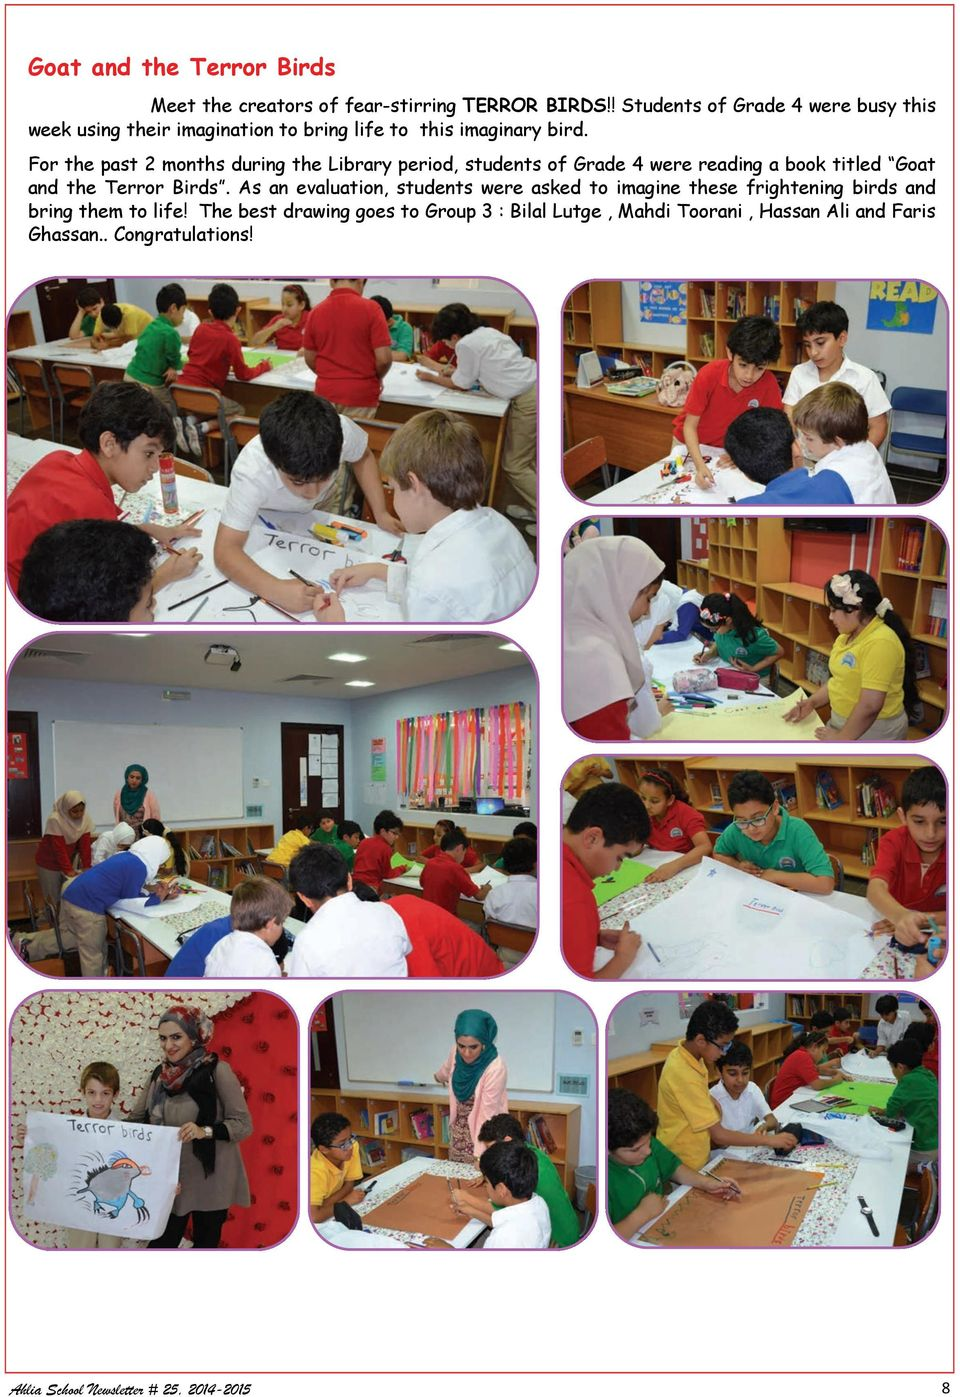 For the past 2 months during the Library period, students of Grade 4 were reading a book titled Goat and the Terror Birds.